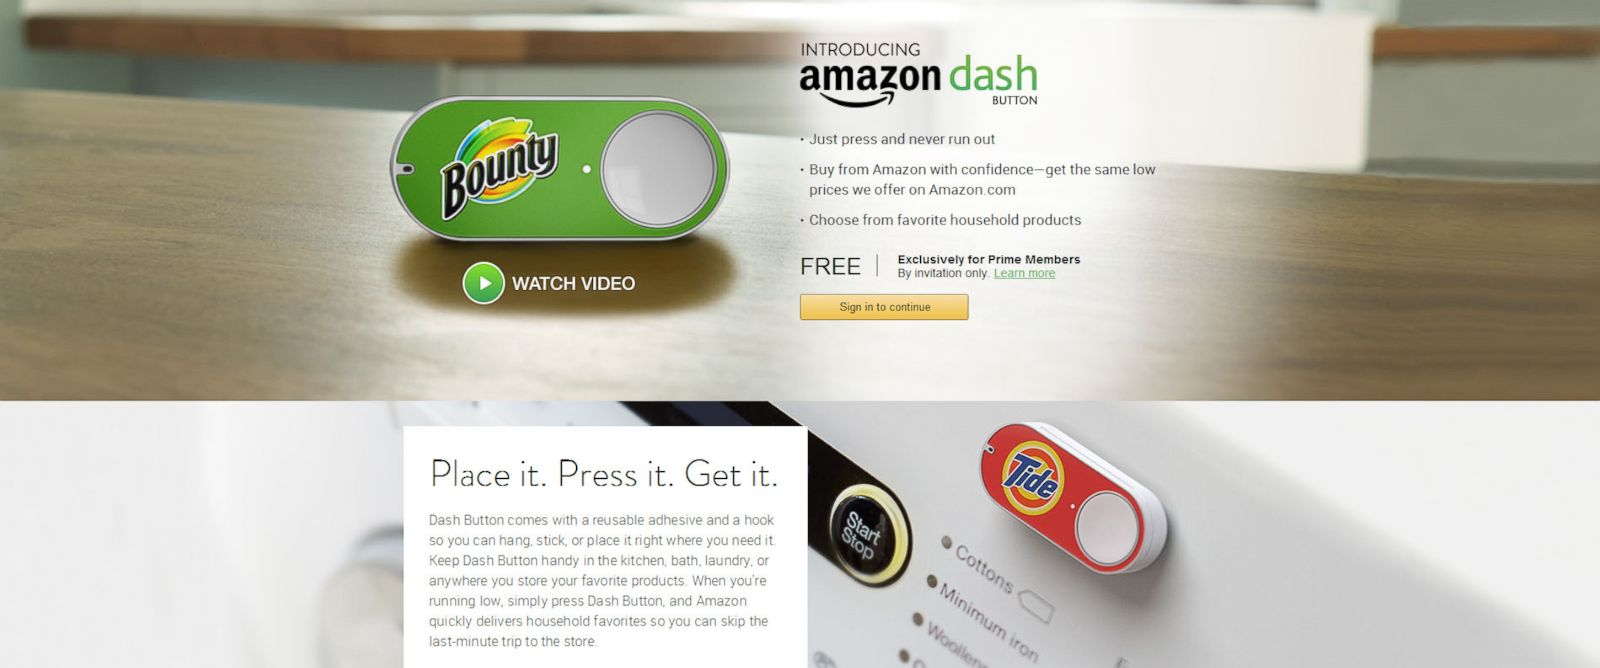 PHOTO: A screenshot of the Amazon Dash Button page shows the new service